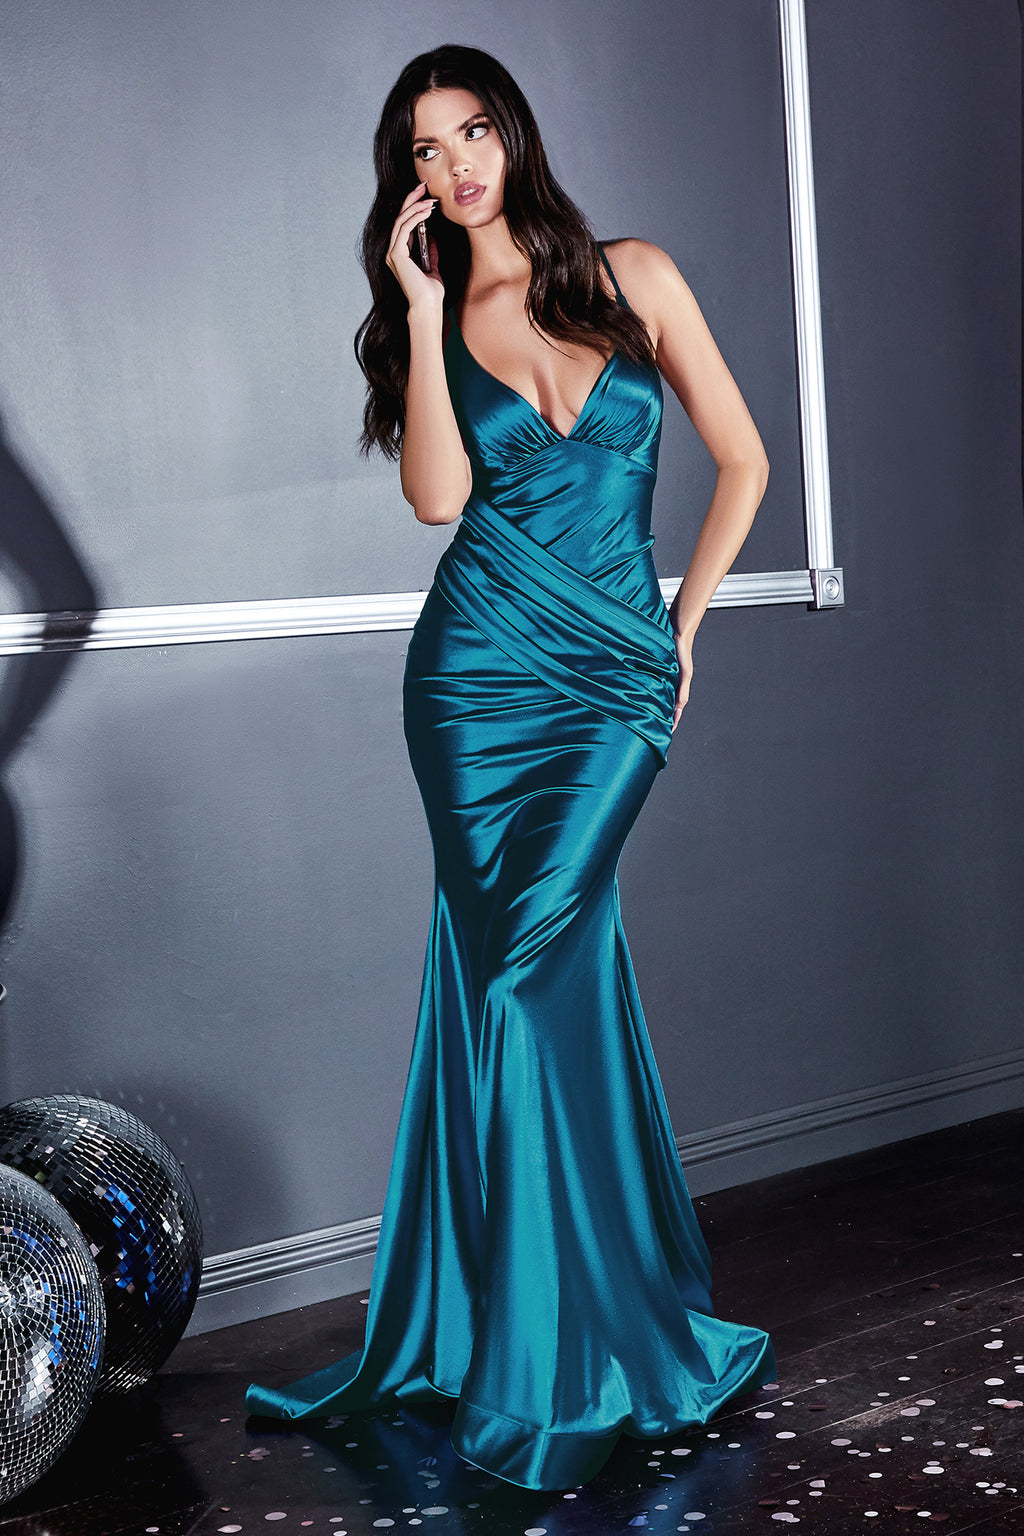 Elegant Mermaid-Style Gown with Deep Neckline and Wrapped Bodice #CDCH236